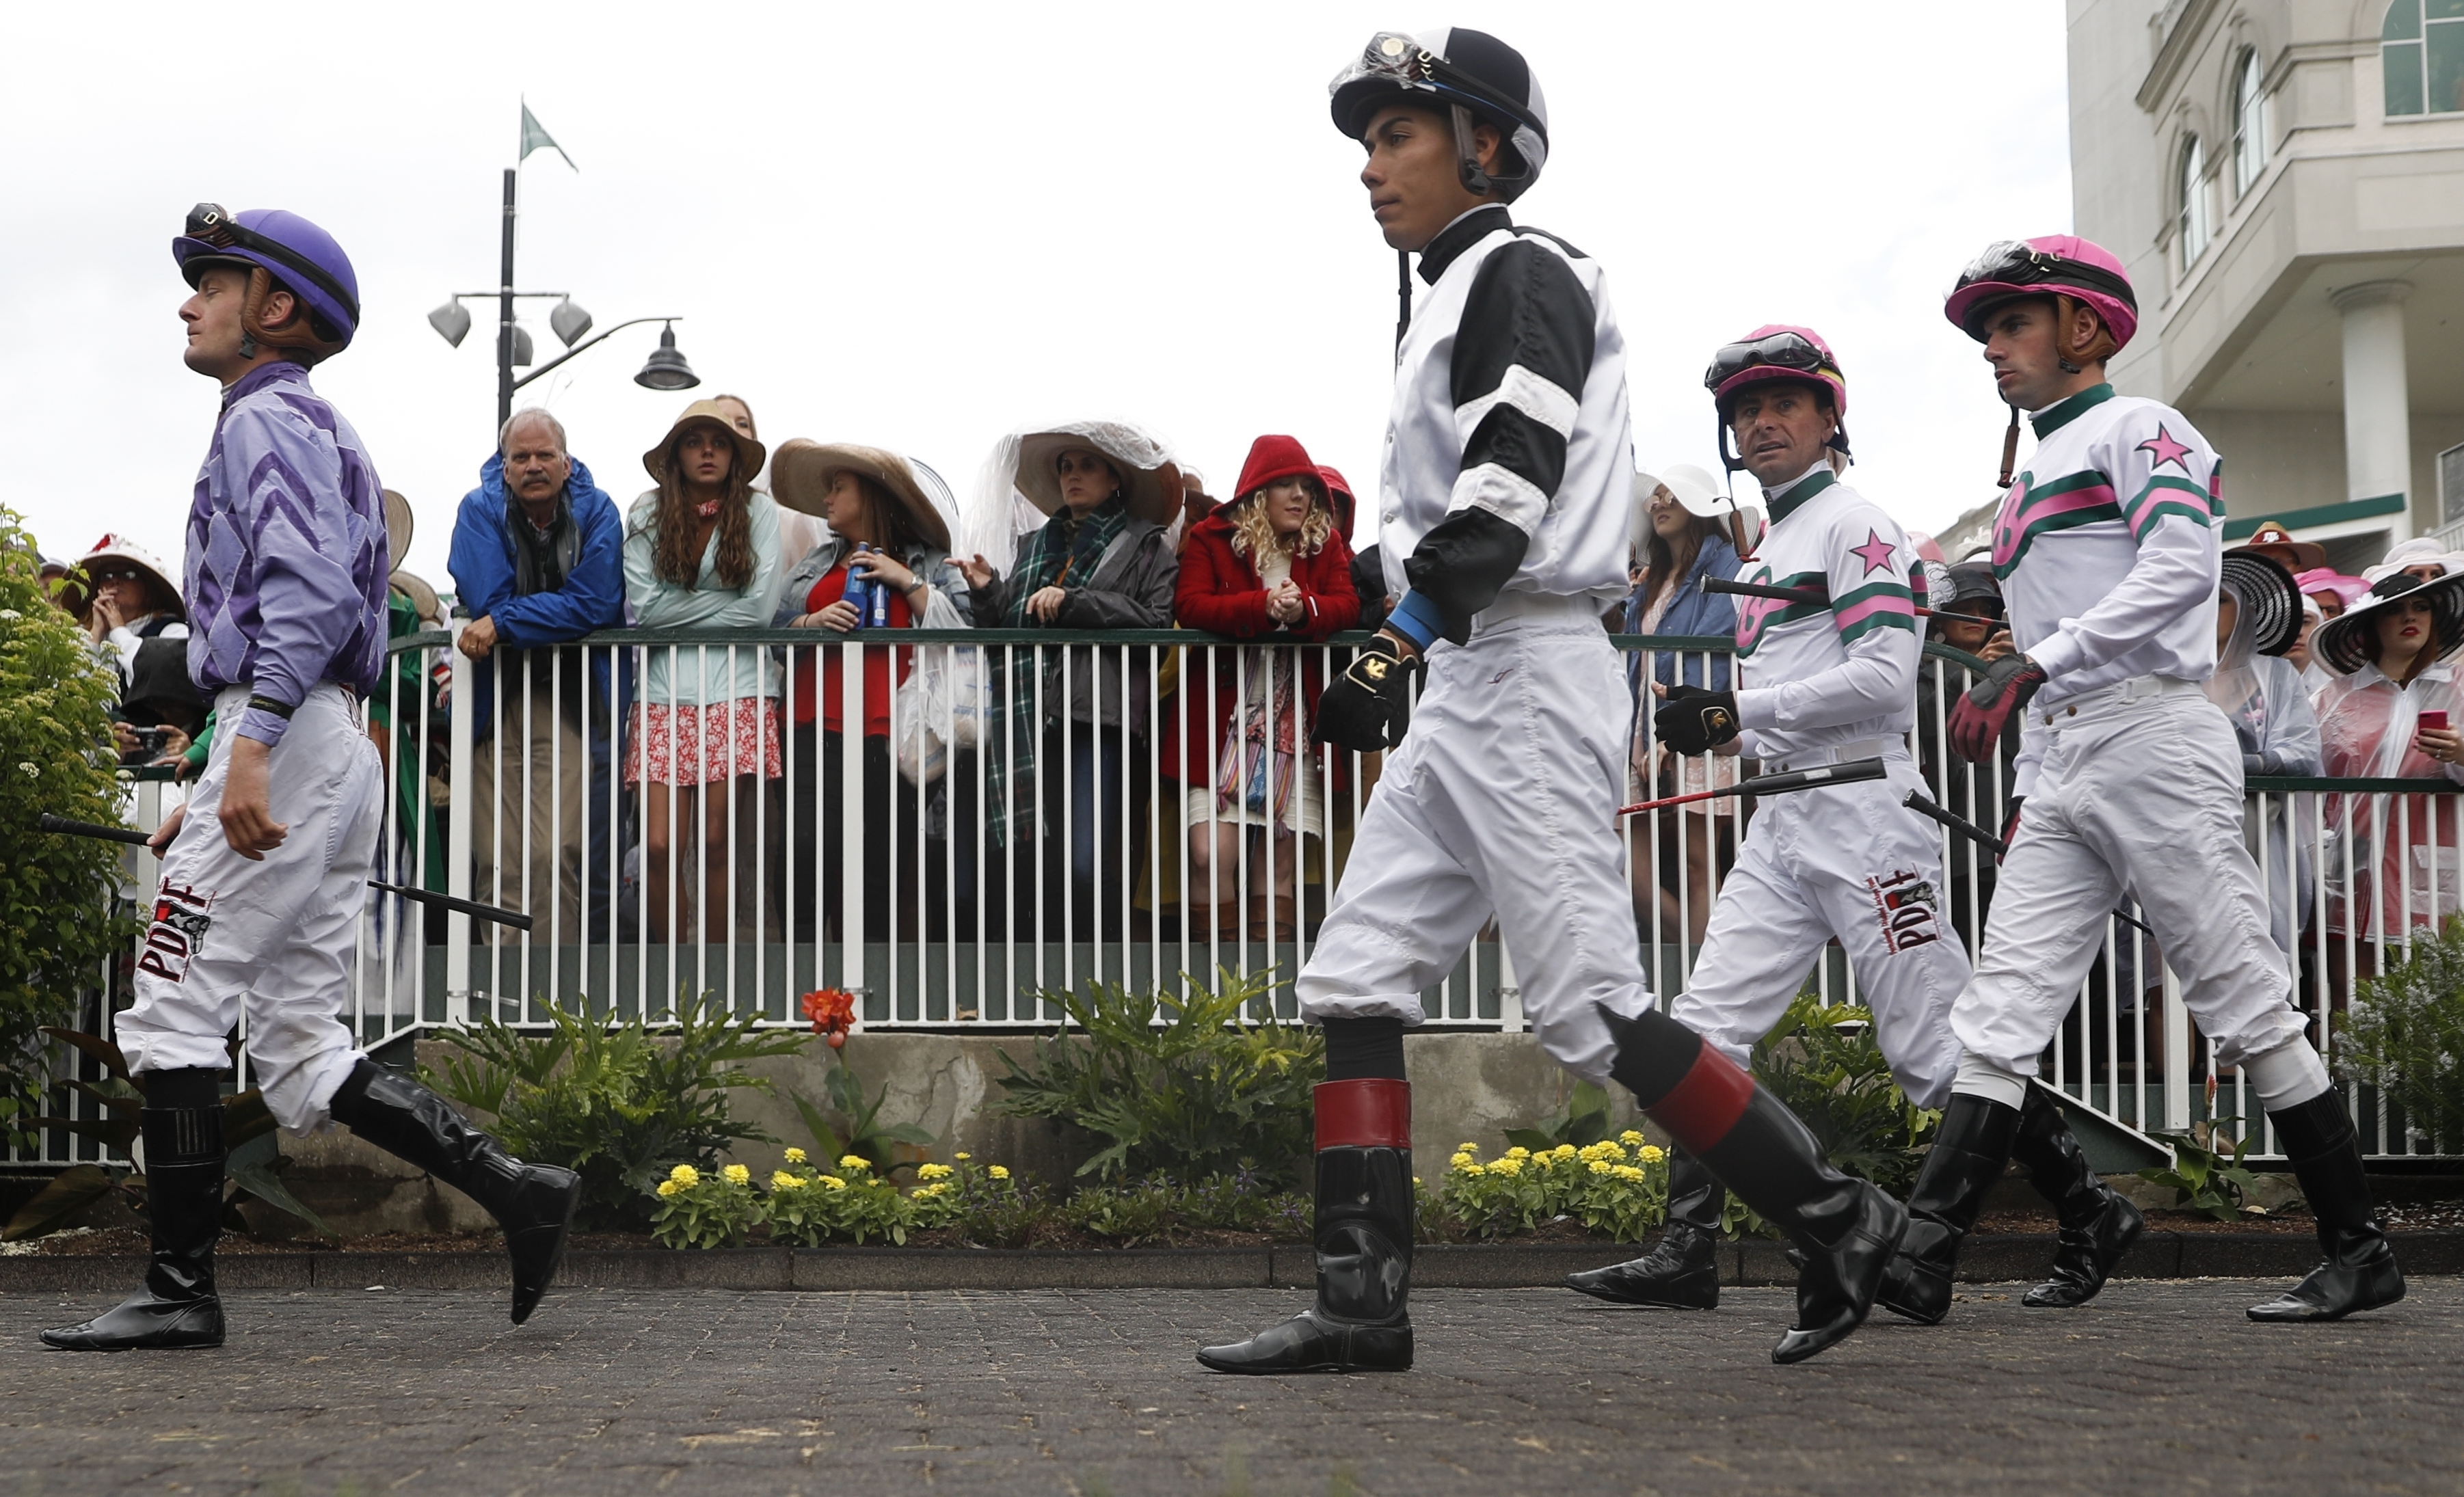 Some jockeys walk through the paddock in a race before the 143rd running of the Kentucky Derby horse race at Churchill Downs Saturday, May 6, 2017, in Louisville, Ky. (AP Photo/John Minchillo)